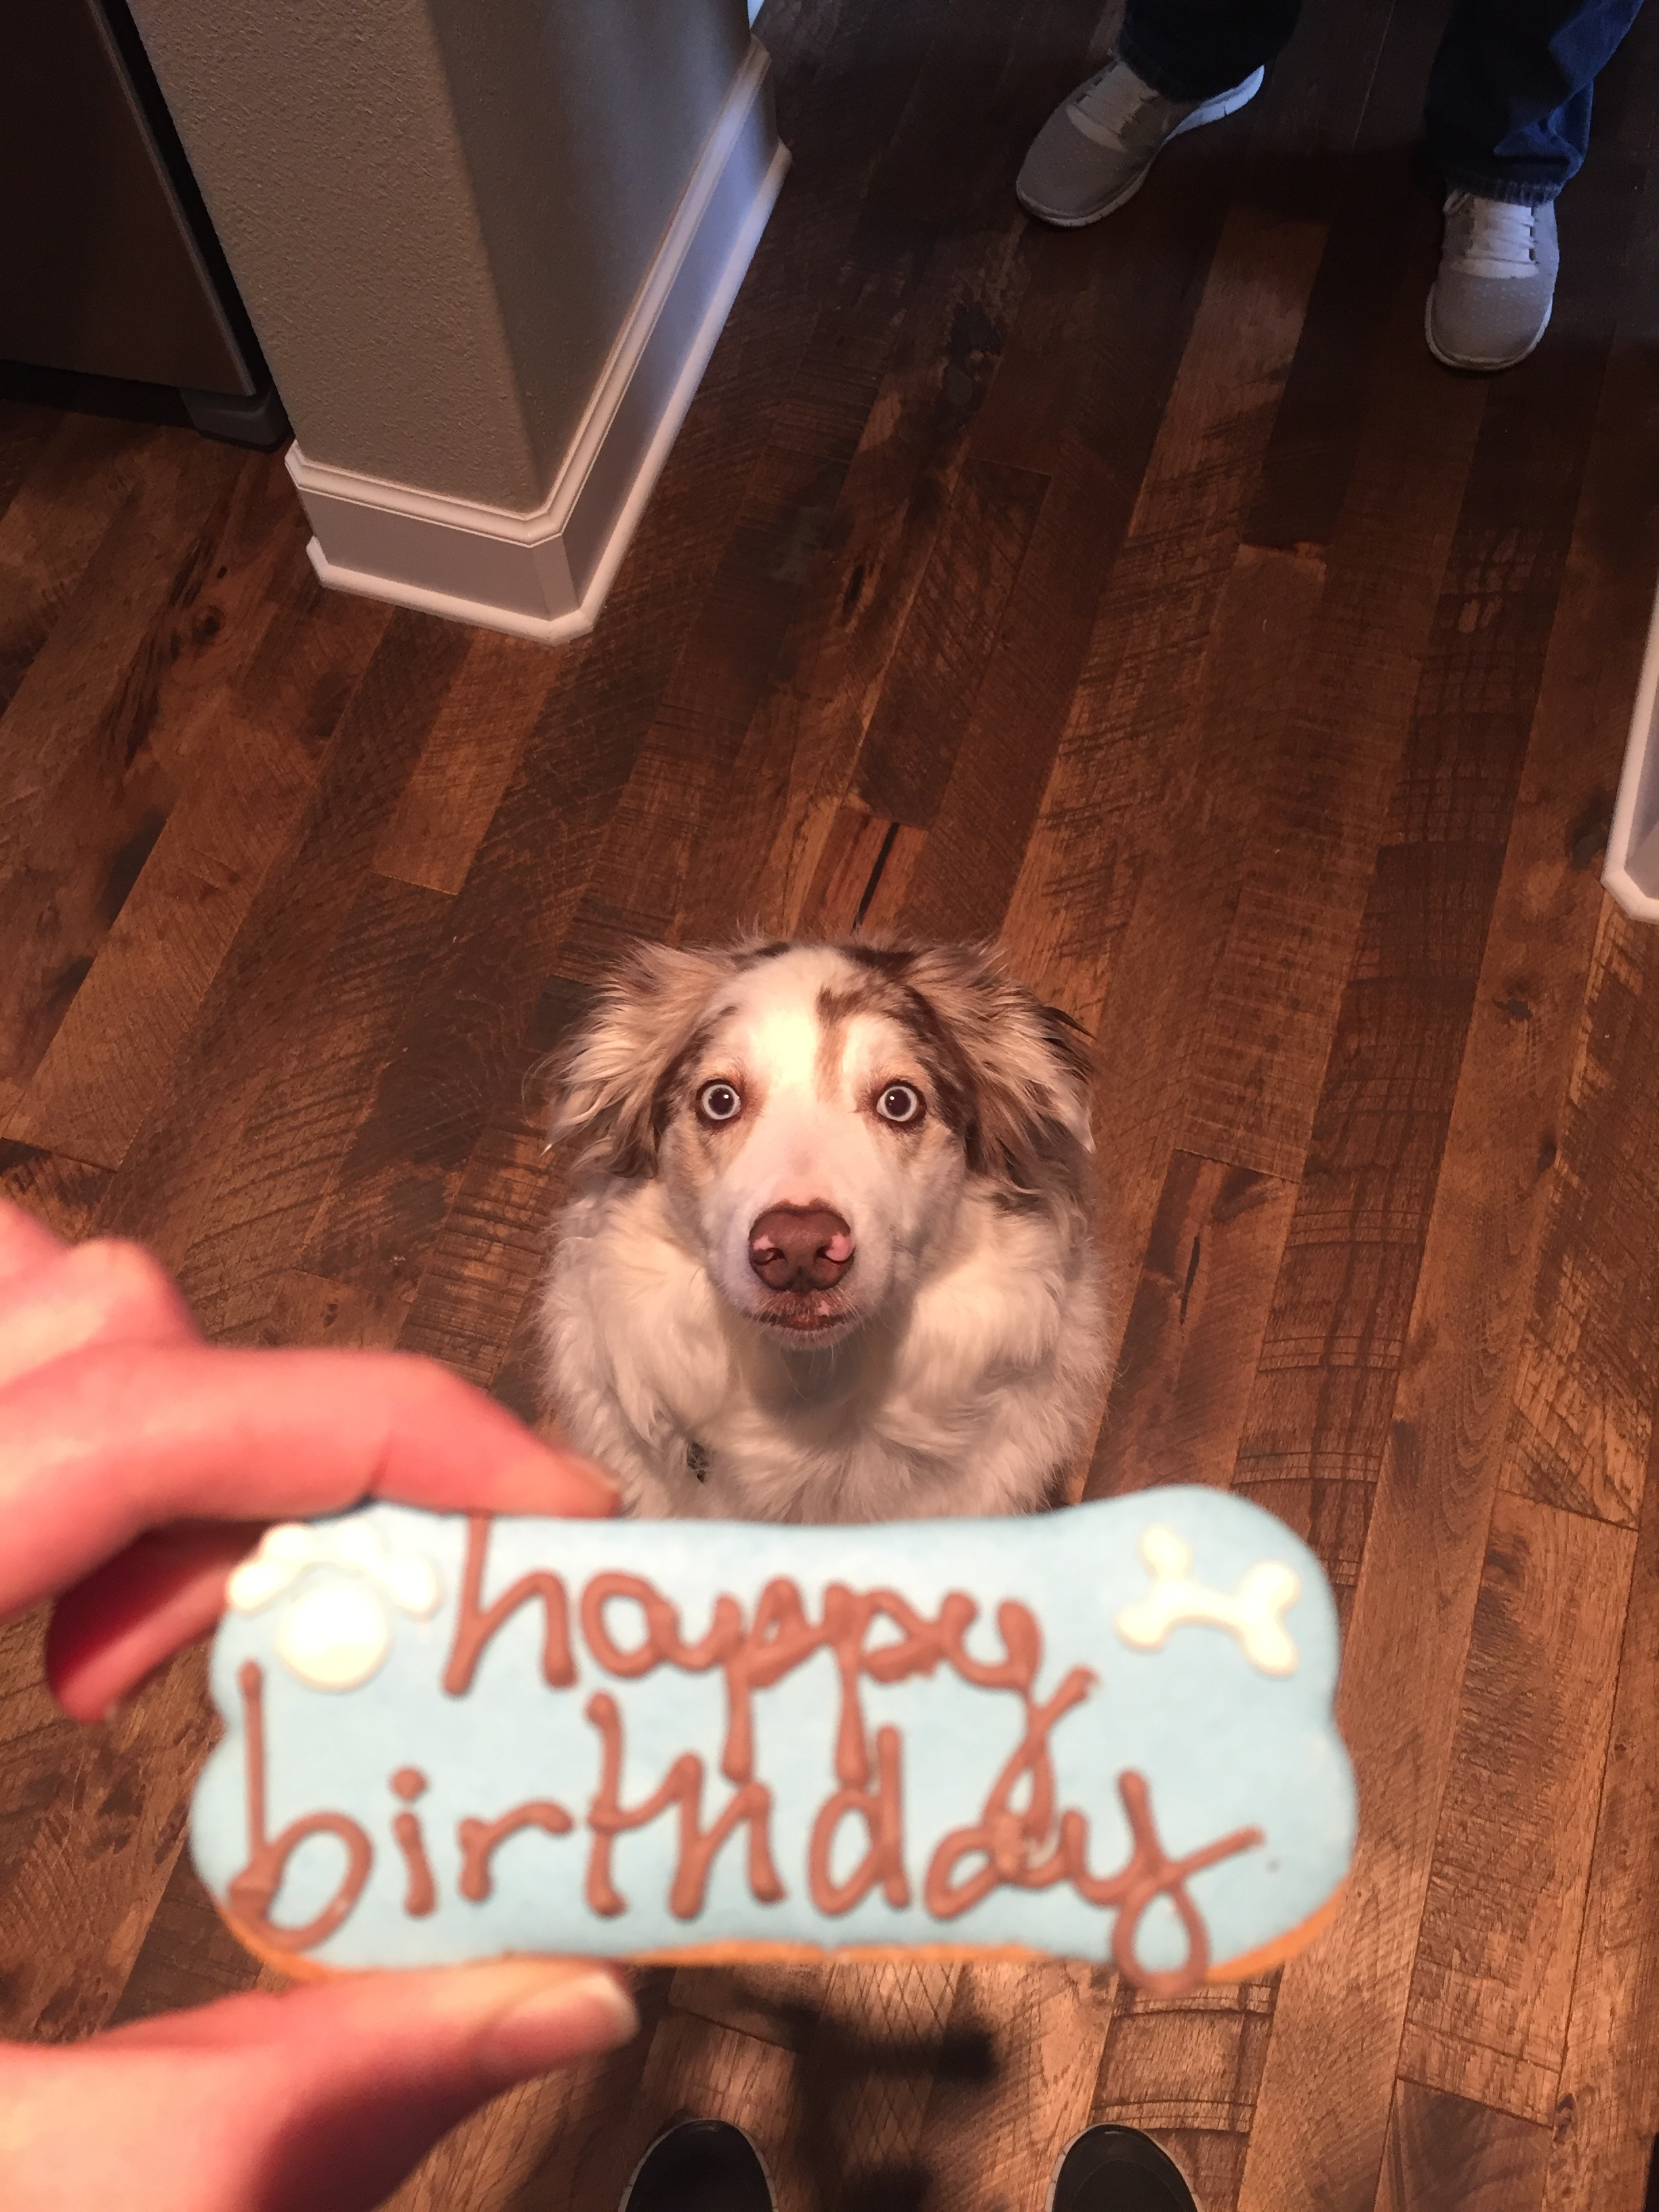 Fenway celebrated a birthday too!